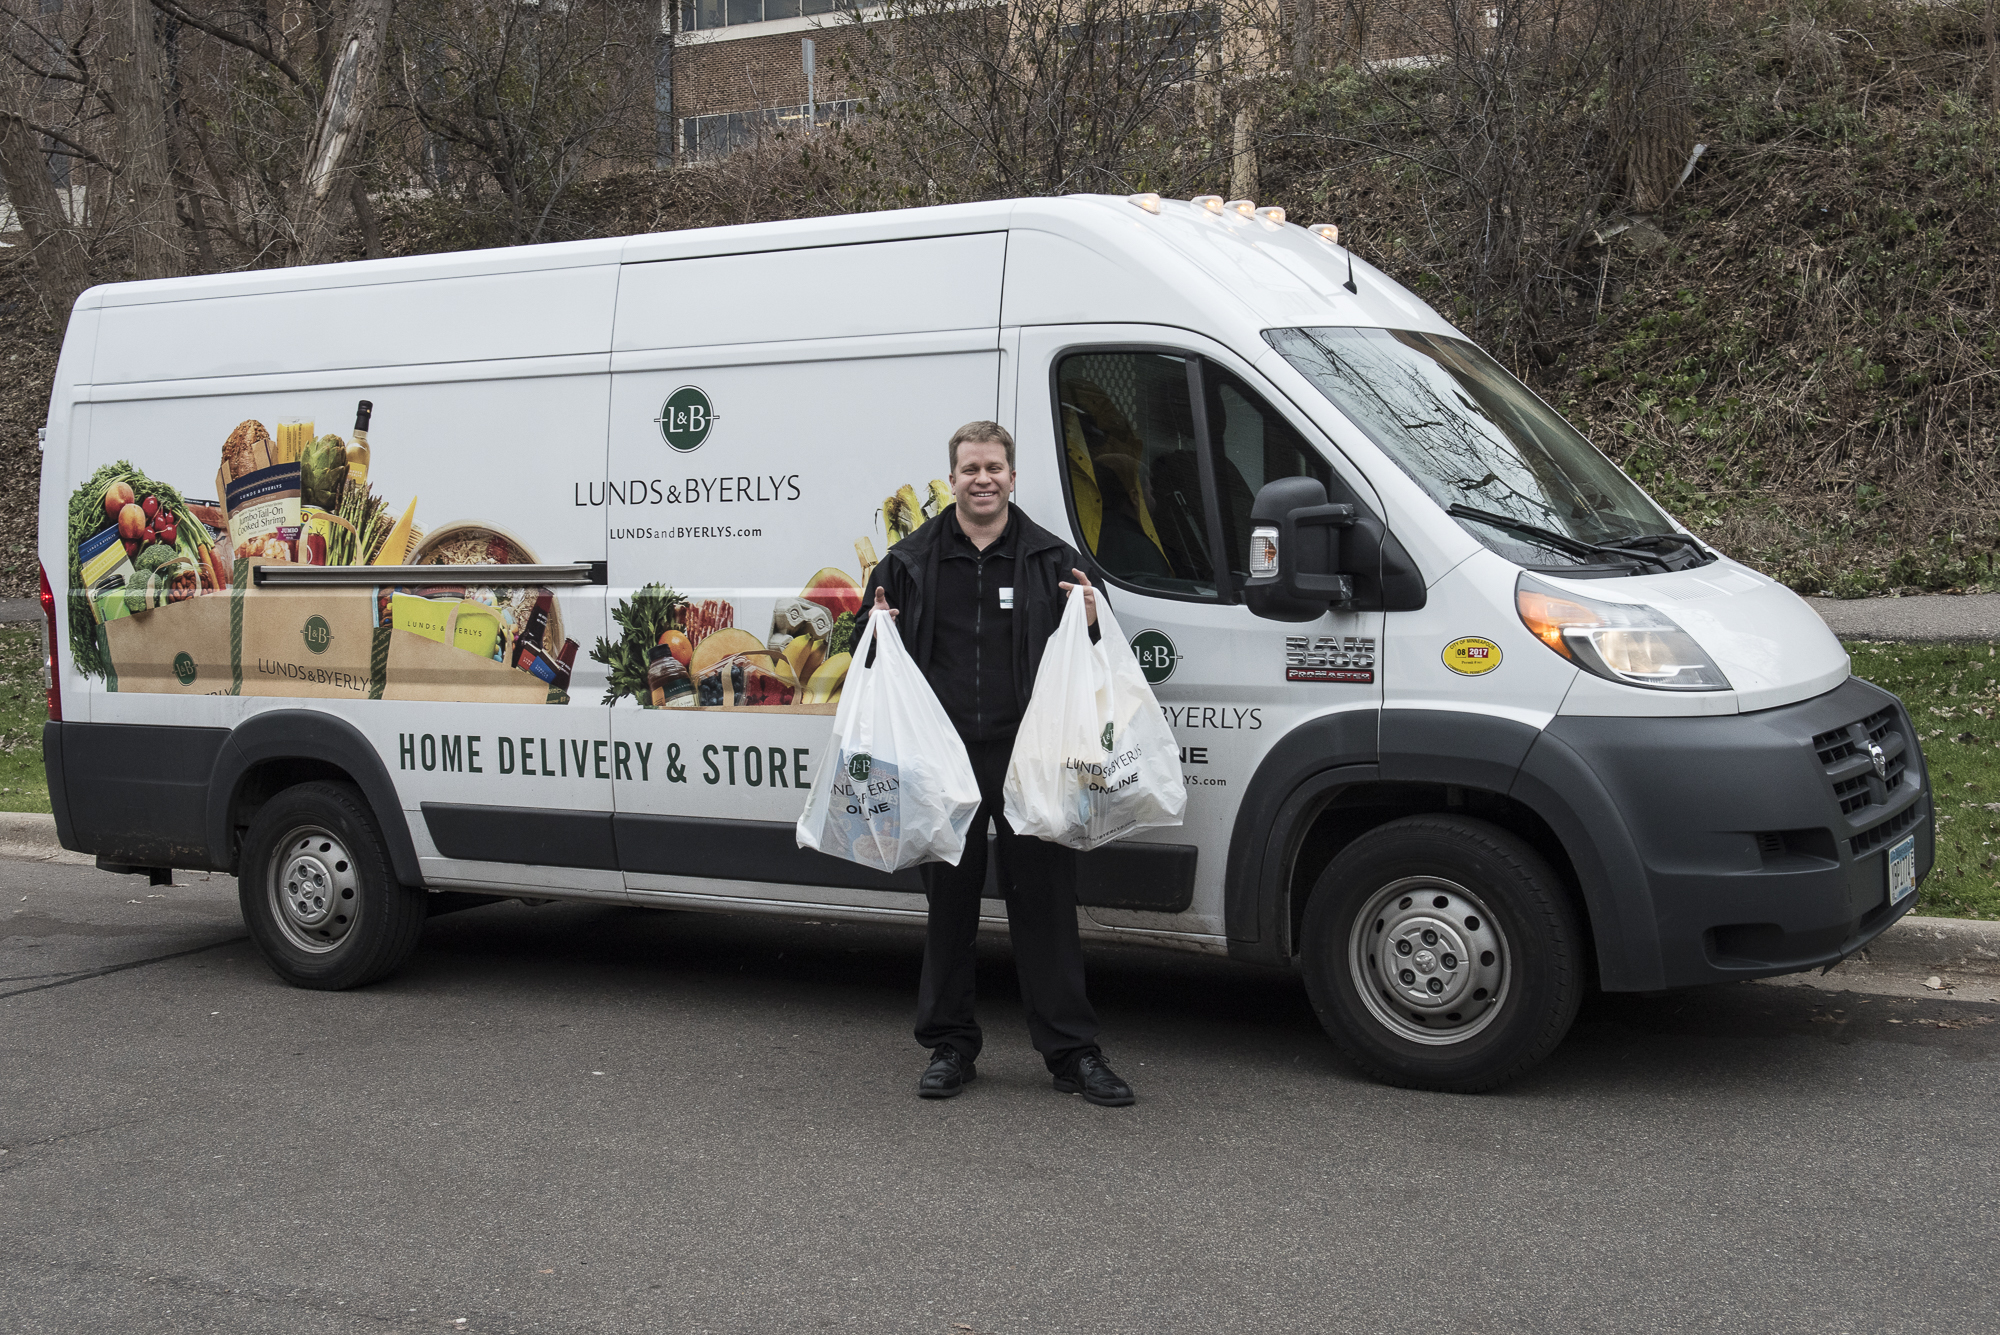 <p>Lunds & Byerlys delivery vans are equipped with climate-controlled compartments so frozen, chilled and room-temperature products are fresh when customers receive them.</p>